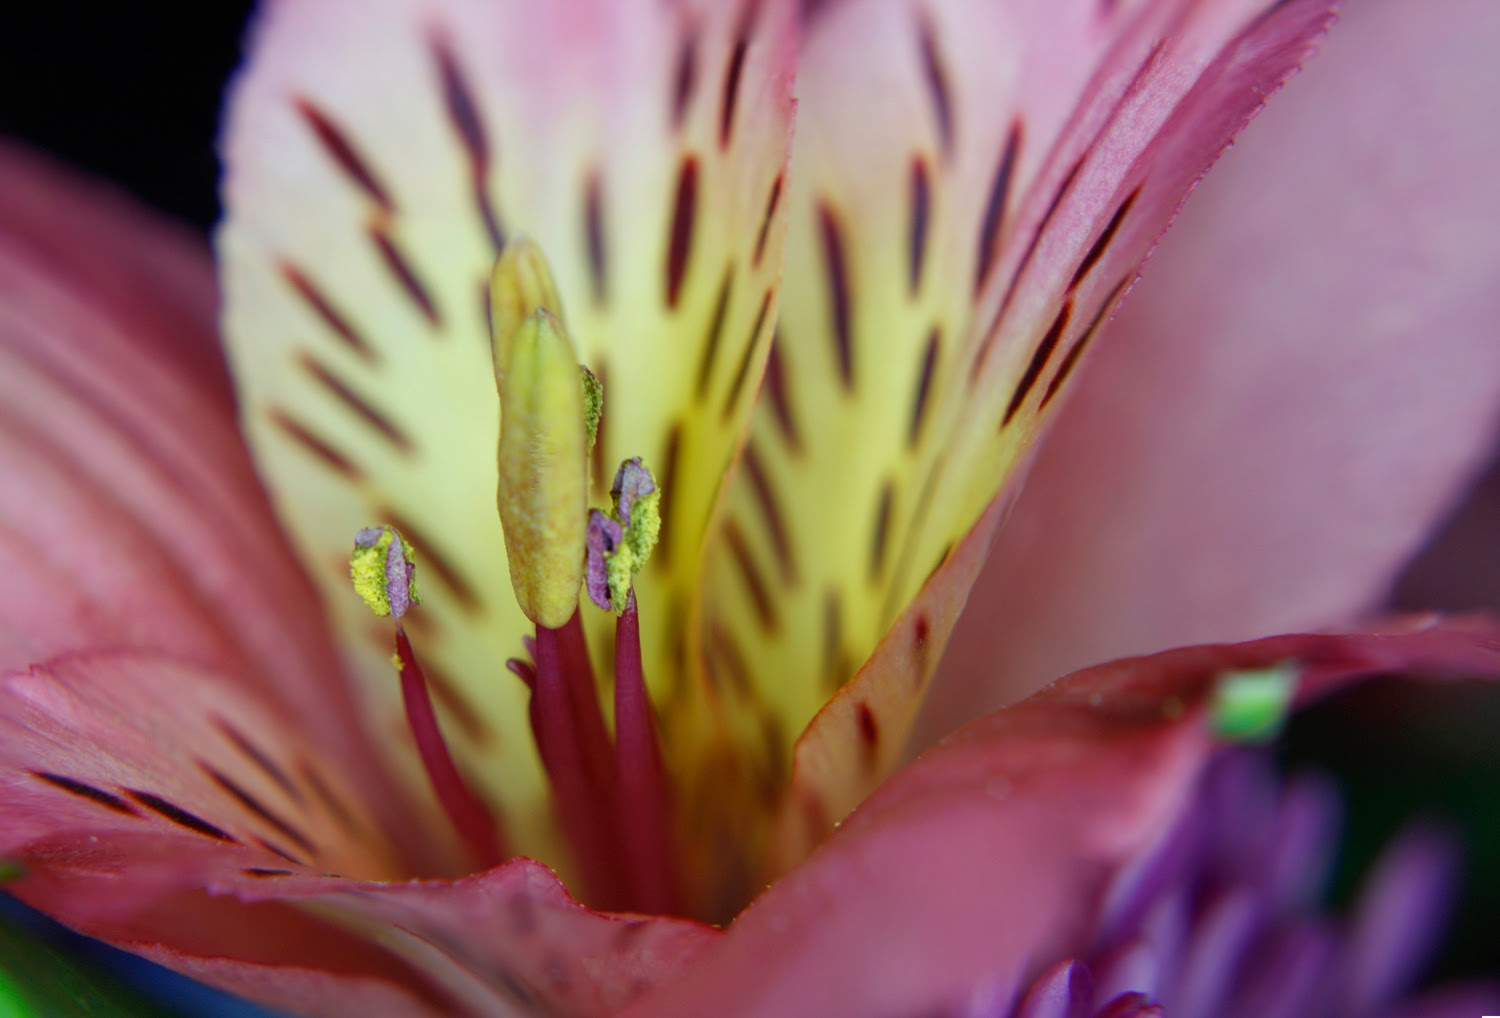 Focus Stacking for Close-Up Flower Photograph | Boost Your Photography